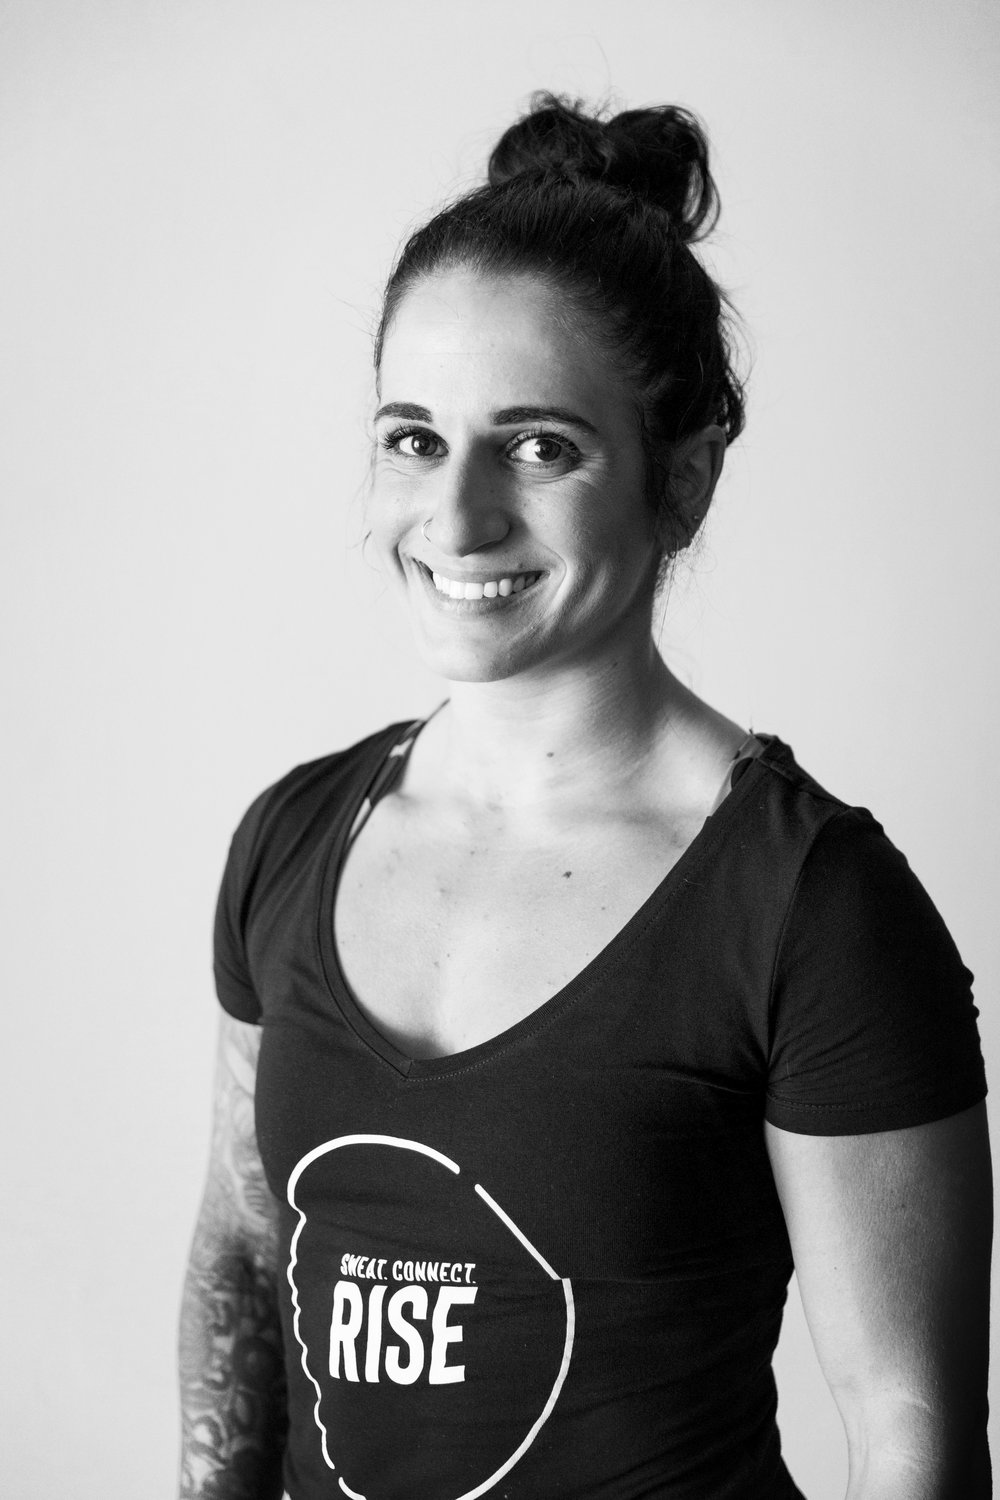 NICOLE - Nicole is a nationally ranked Olympic Weightlifter and avid CrossFitter of 5 years. She has been a competitor and athlete most of her life beginning with equestrian show jumping and now the sport of Olympic Weightlifting. Her deep passion for fitness and helping people is what drives her. Nicole has been a part of the CrossFit. She is excited to be a part of RISE and help them reach their goals